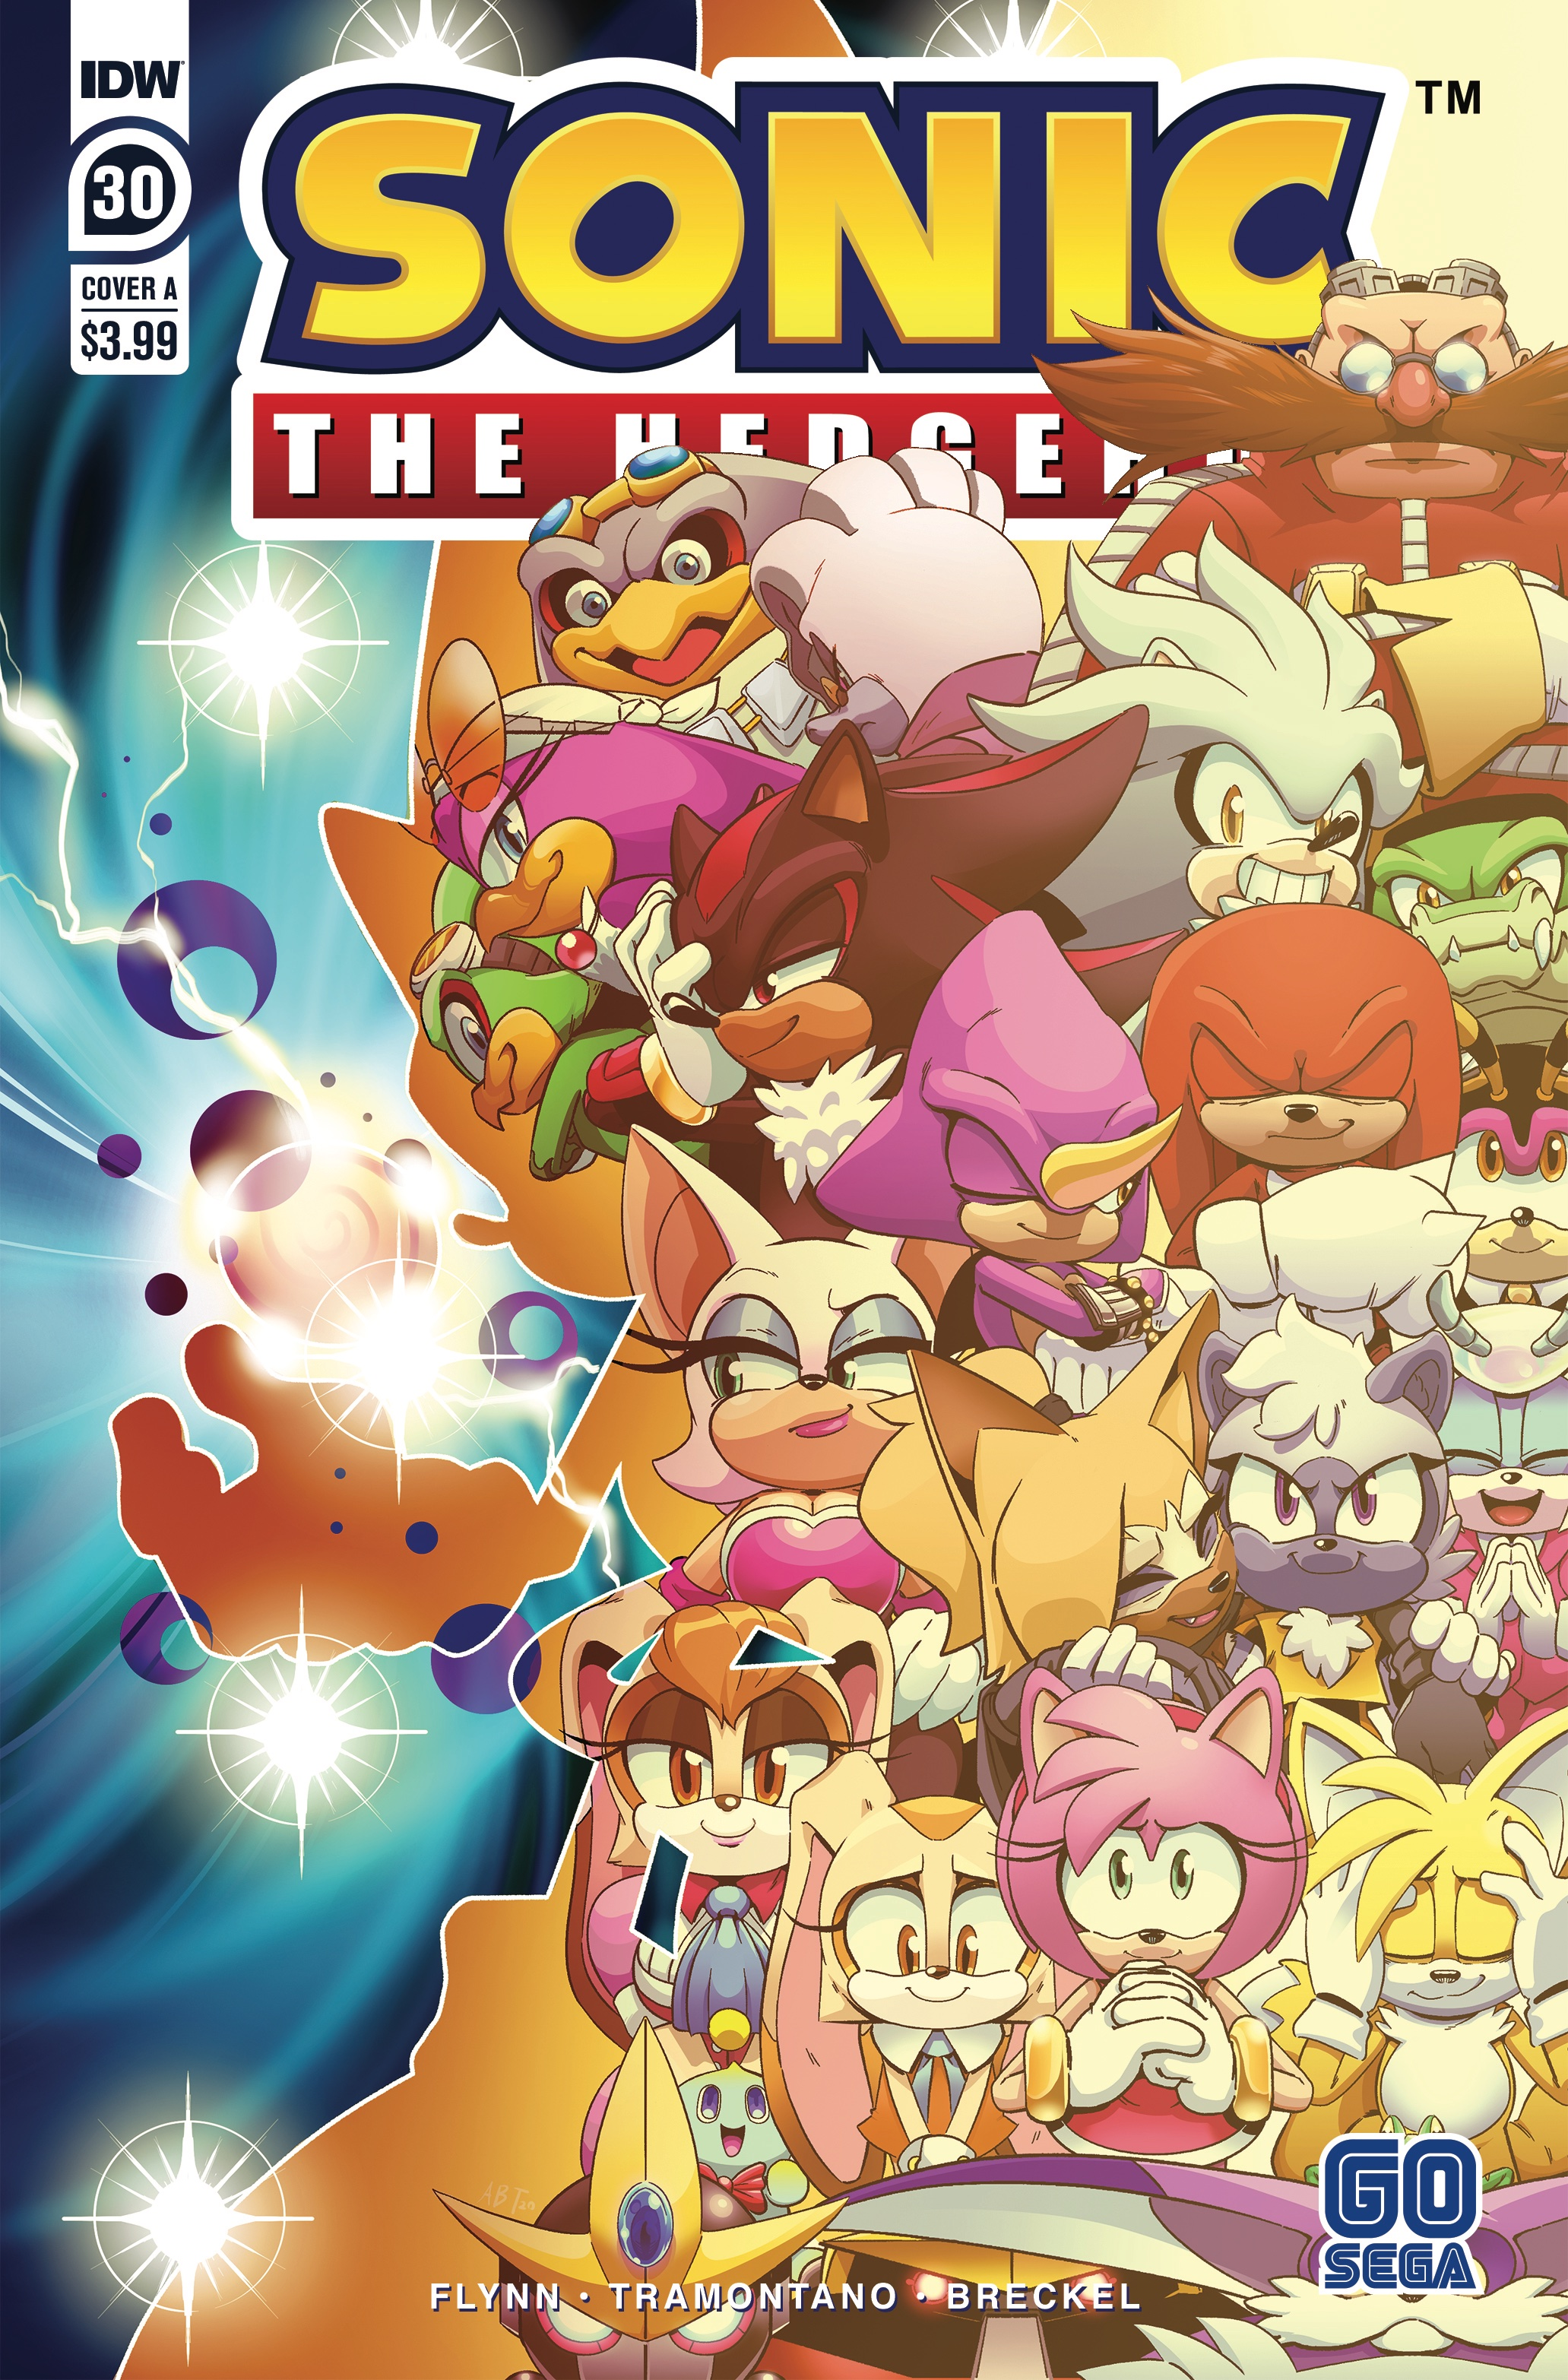 IDW Sonic the Hedgehog Issue 30